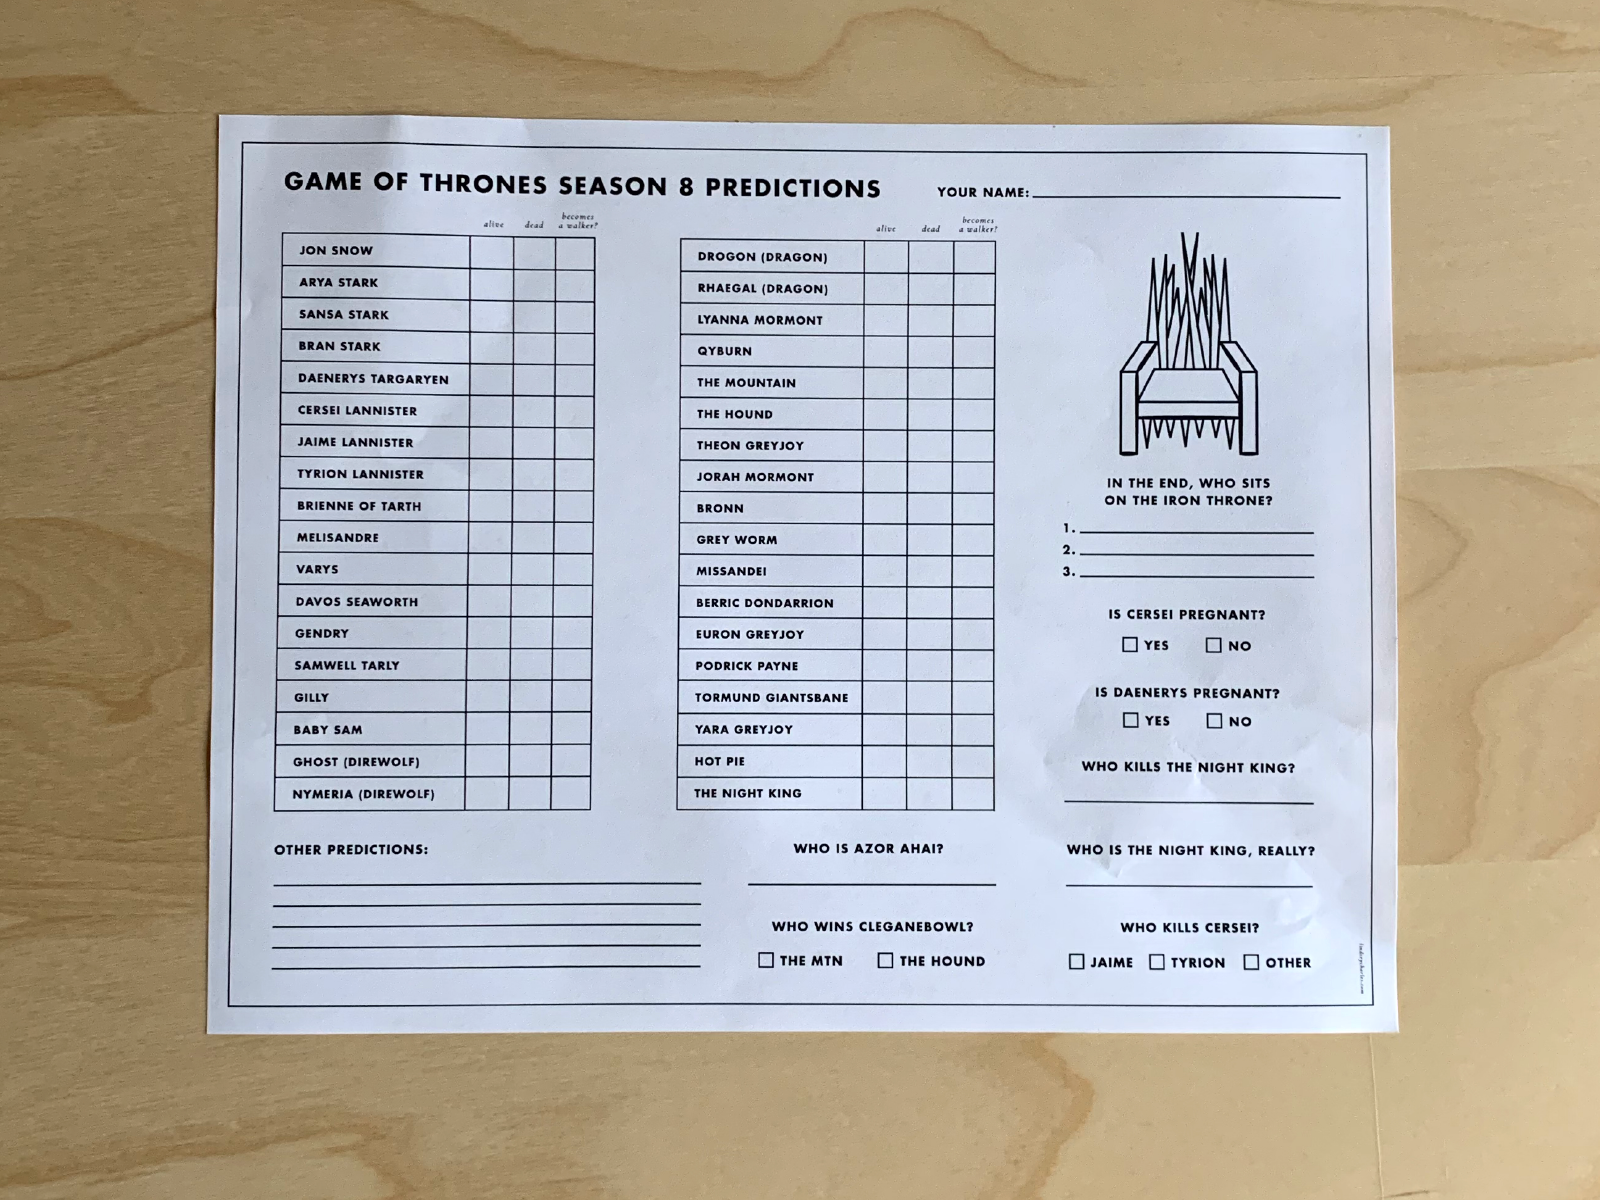 Game Of Thrones Season 8 Prediction Sheet By Lindsey Charles